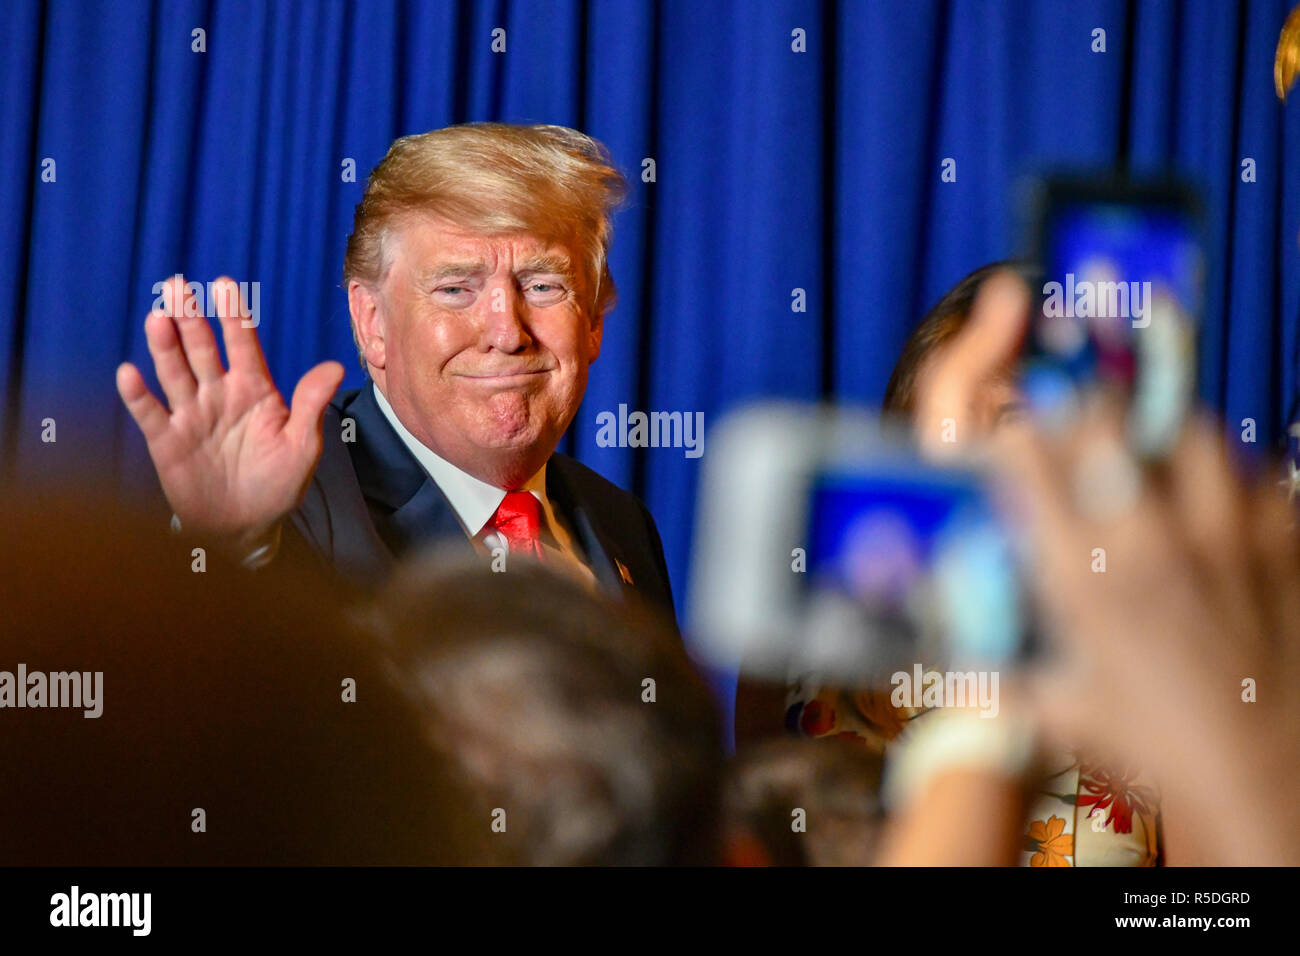 Buenos Aires, Argentina. 1st December, 2018. Argentina. 1st December 2018. Buenos Aires, Argentina. 30th November 2018. U.S. President Donald Trump, waves during a meet and greet with staff and families of US Embassy November 30, 2018 in Buenos Aires, Argentina. 30th November 2018 Credit: Planetpix/Alamy Live News Credit: Planetpix/Alamy Live News - Stock Image